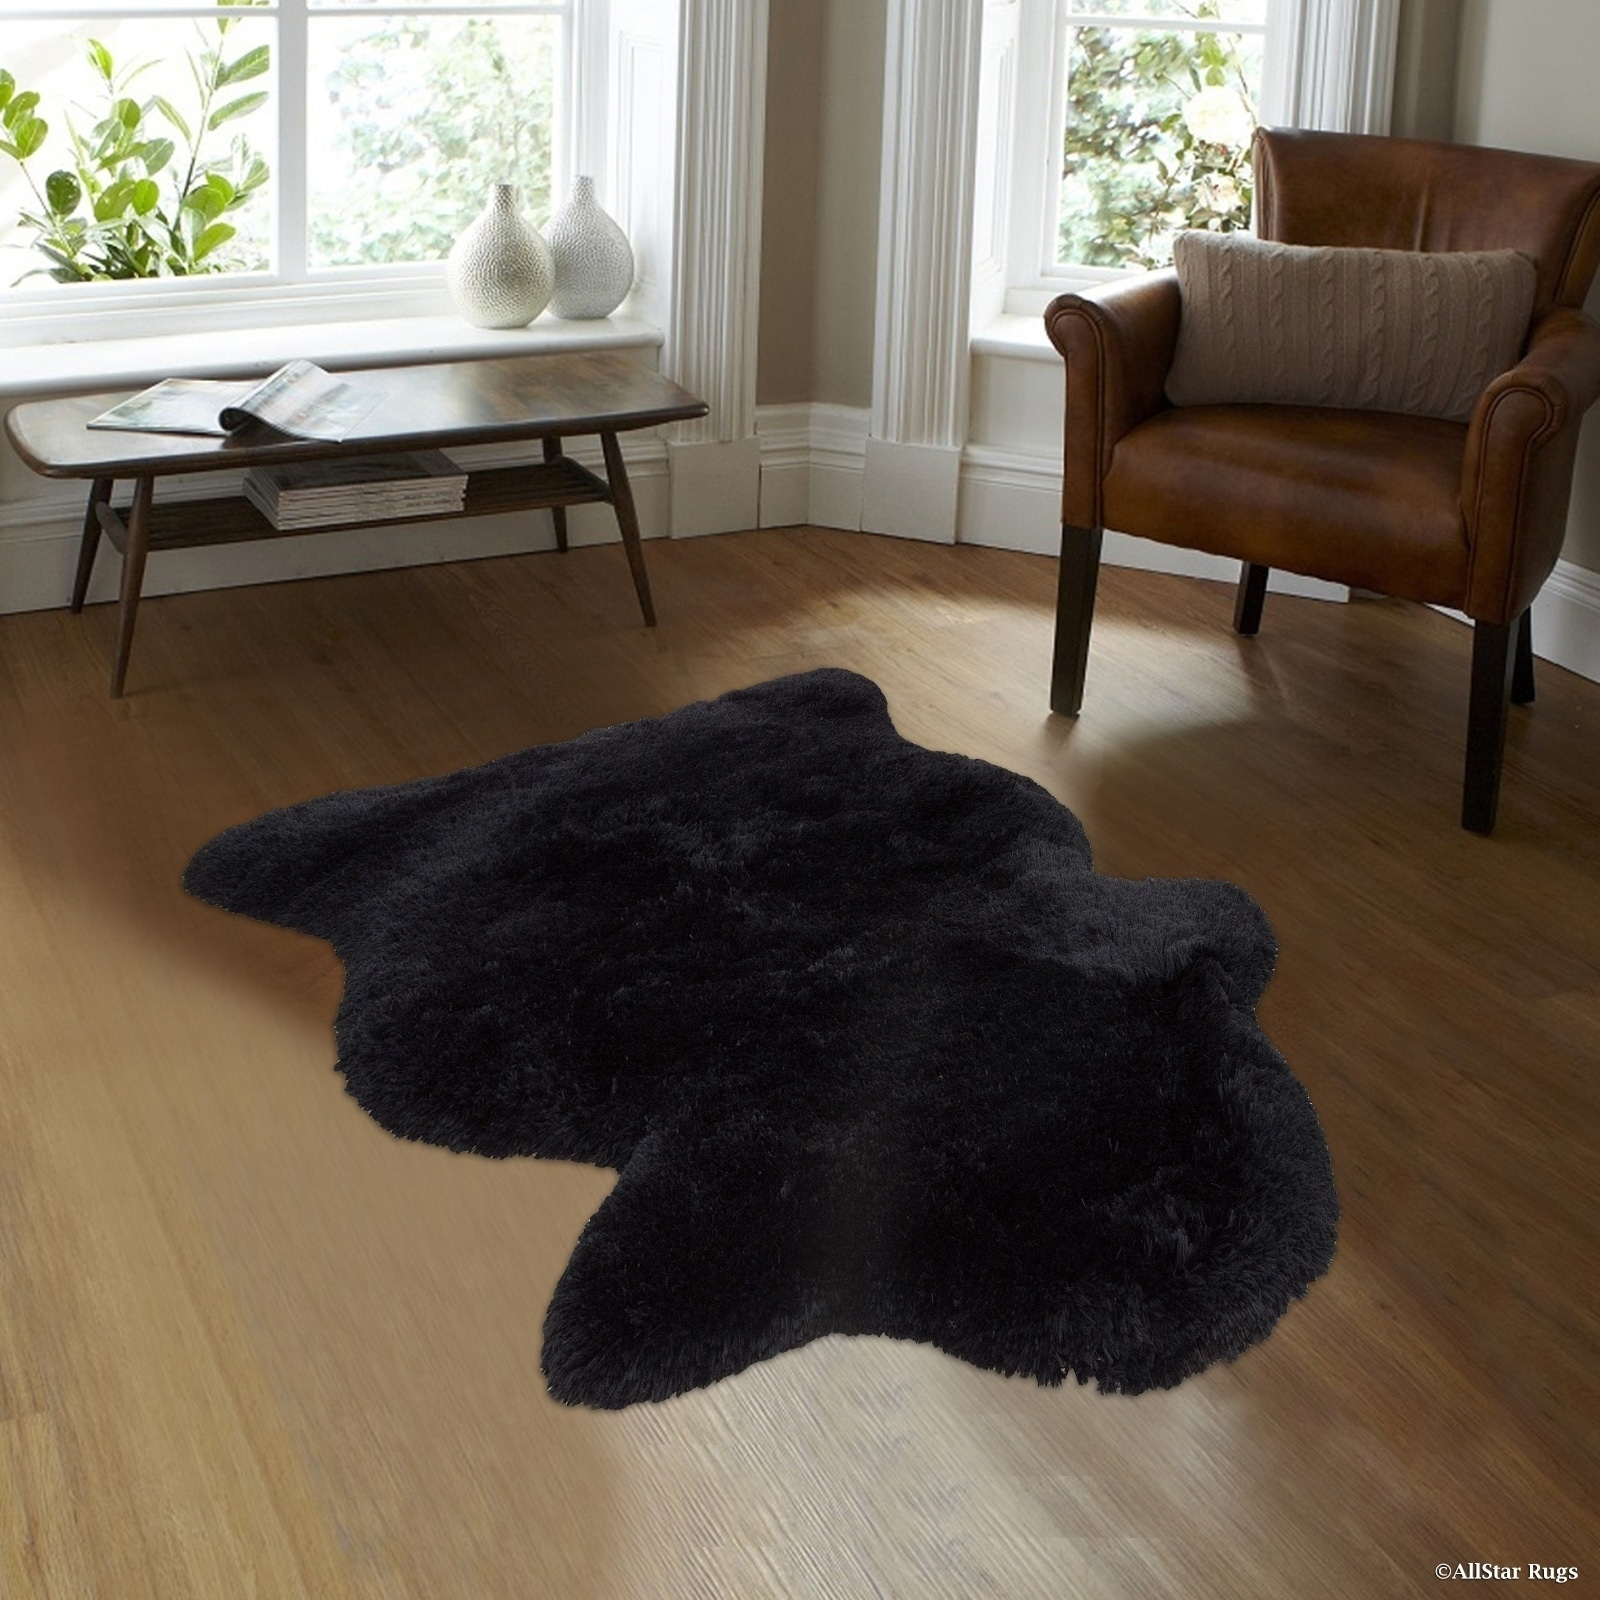 Black Faux Sheep Non-shedding Soft Solid Shaggy Polar Bea...